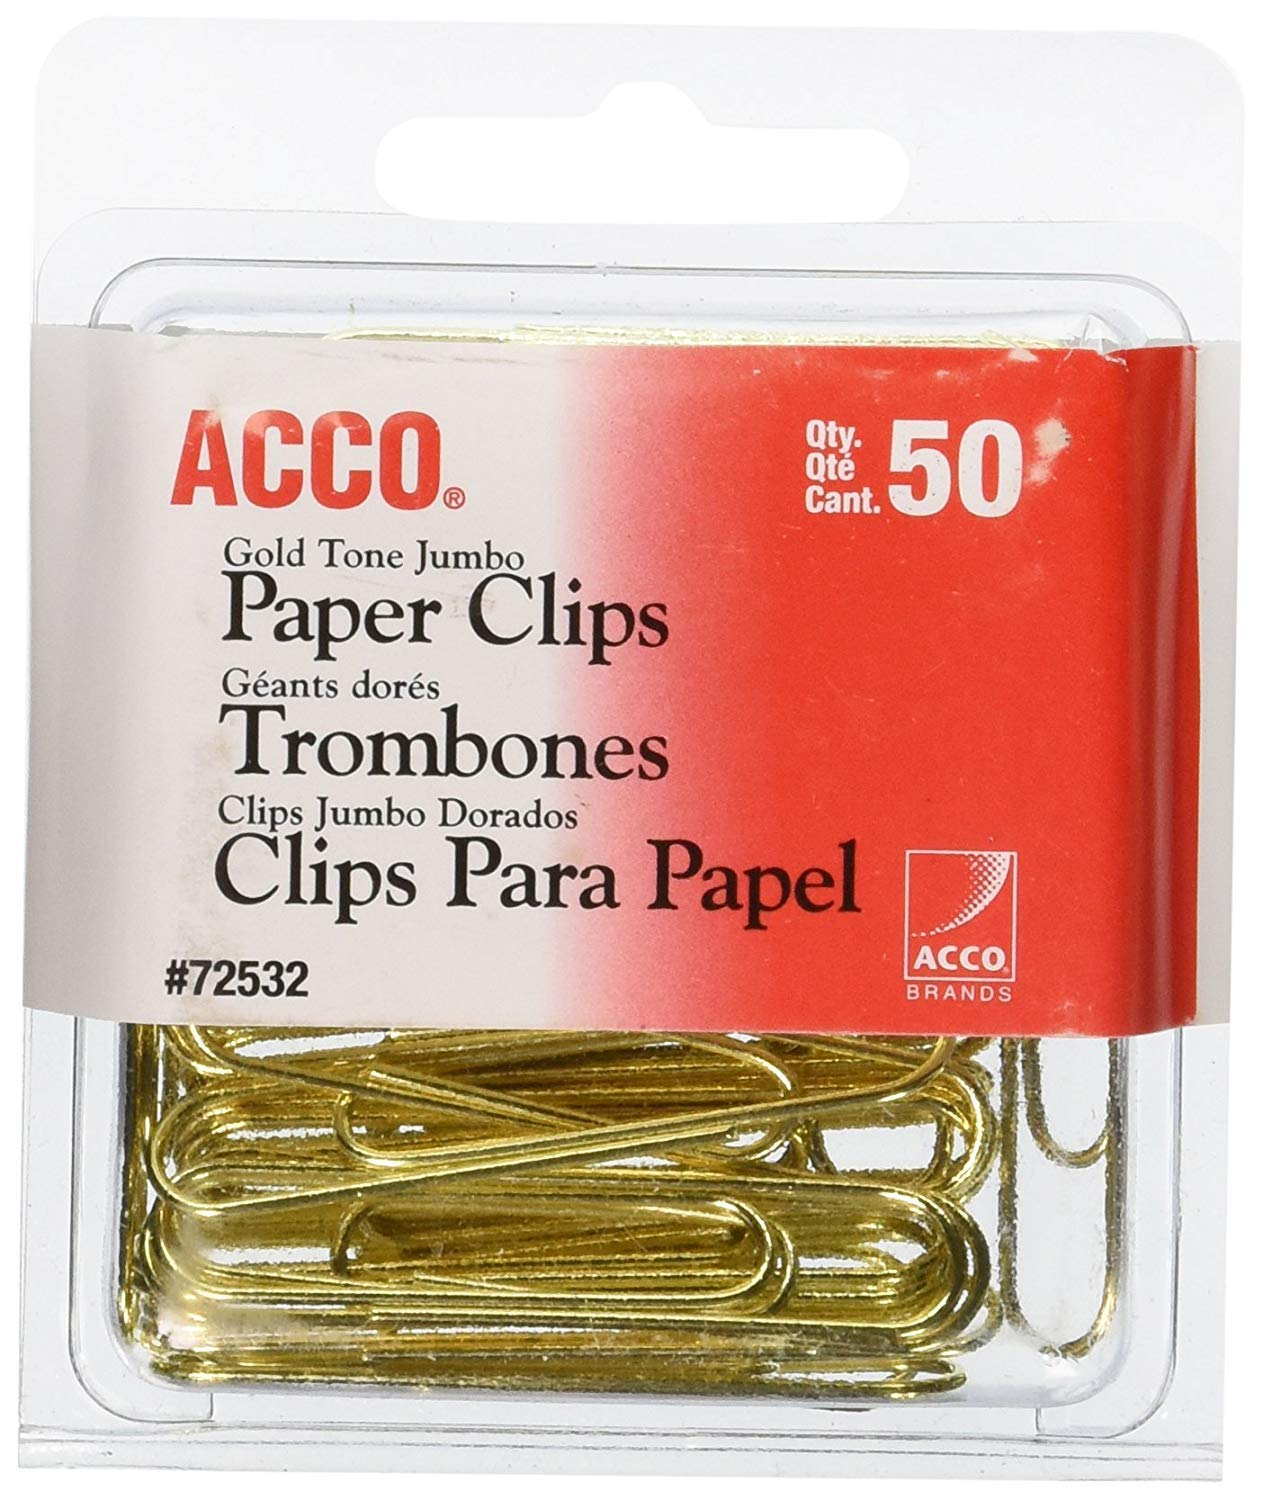 ACCO Paper Clips, Jumbo, Smooth, Gold, 50 Clips/Box, 24 Boxes per Pack (1100 Clips Total) by ACCO